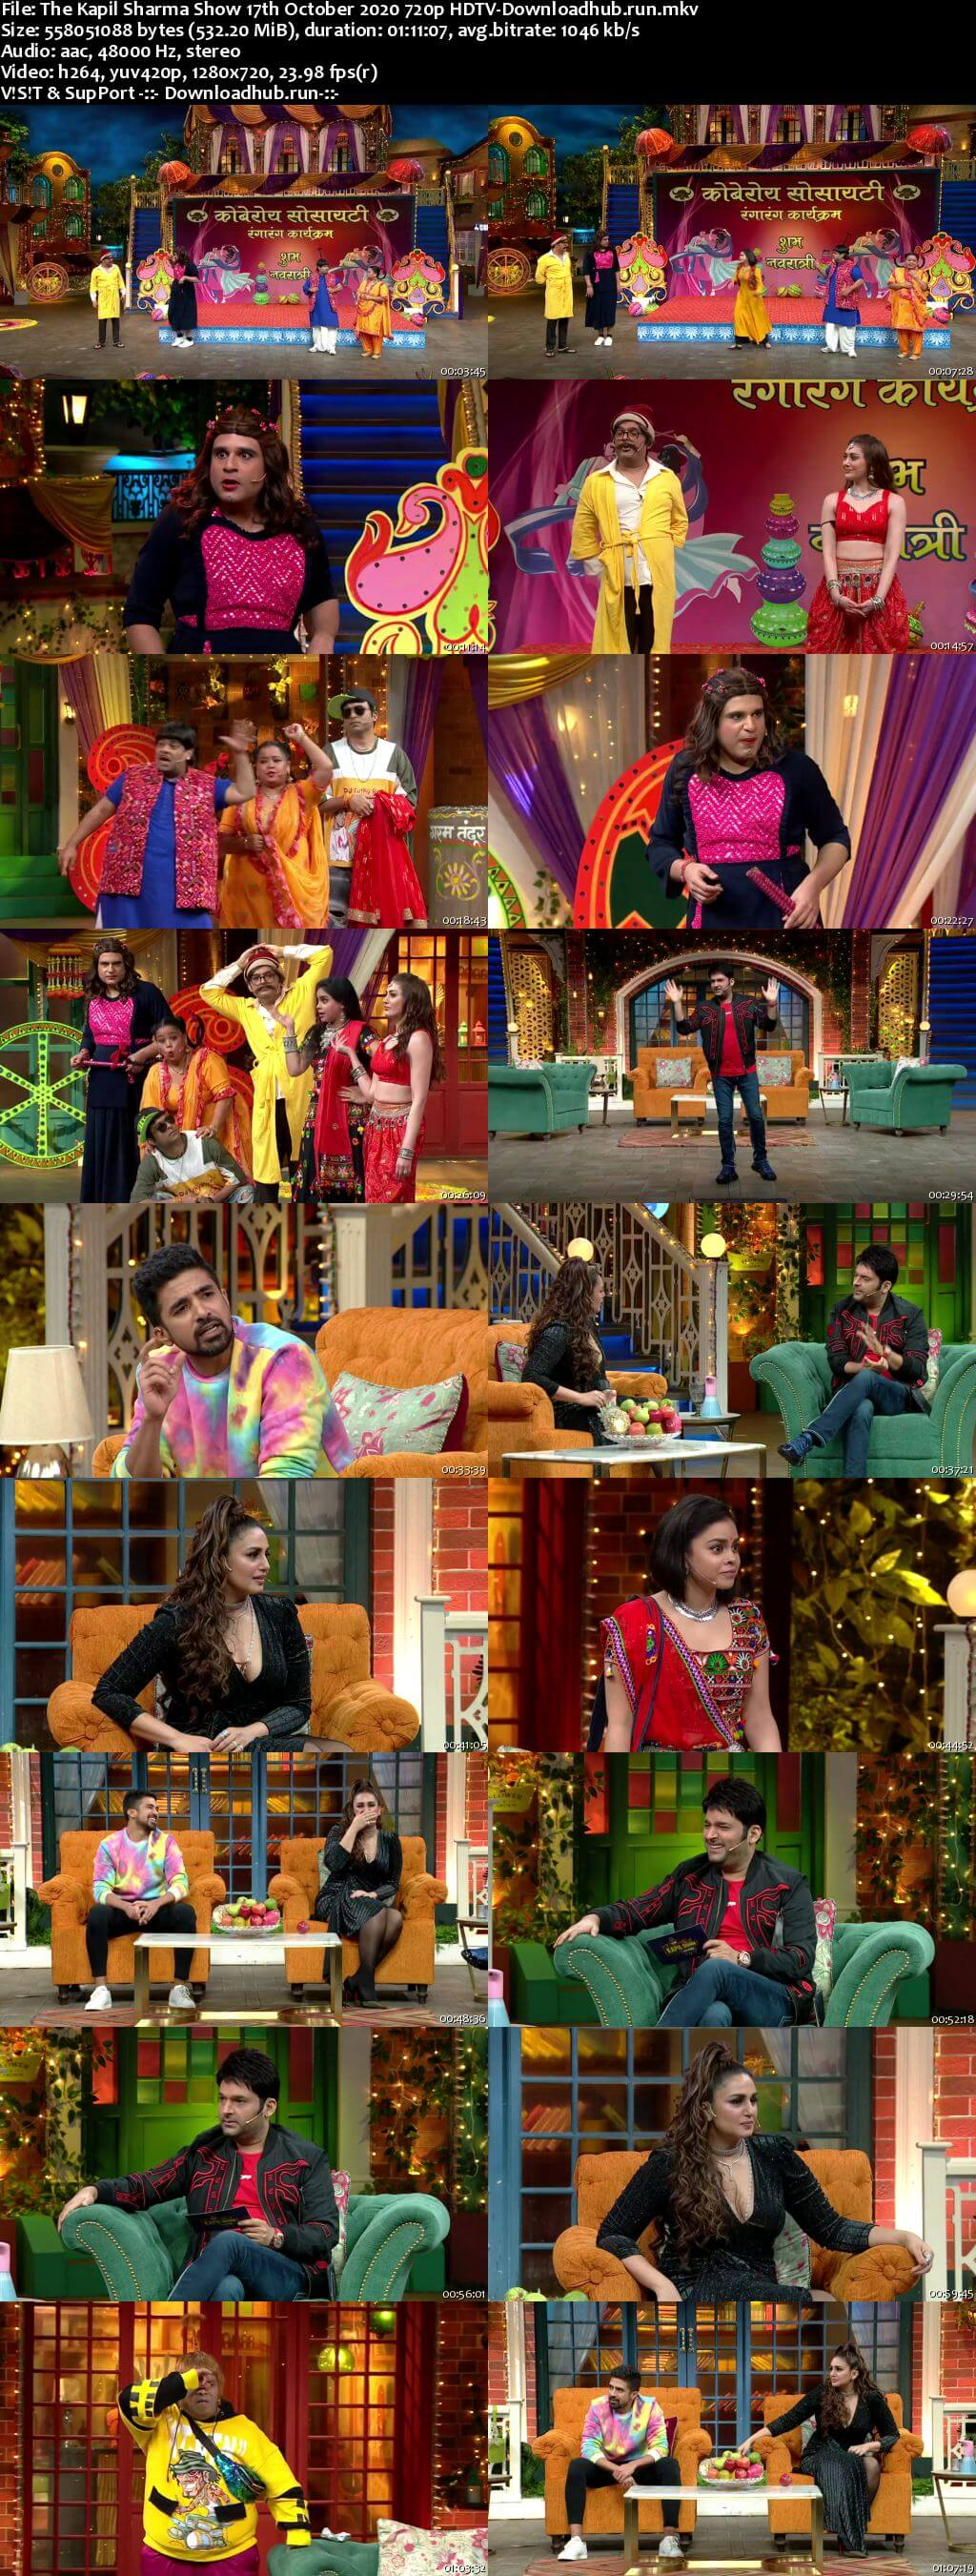 The Kapil Sharma Show 17 October 2020 Episode 150 HDTV 720p 480p